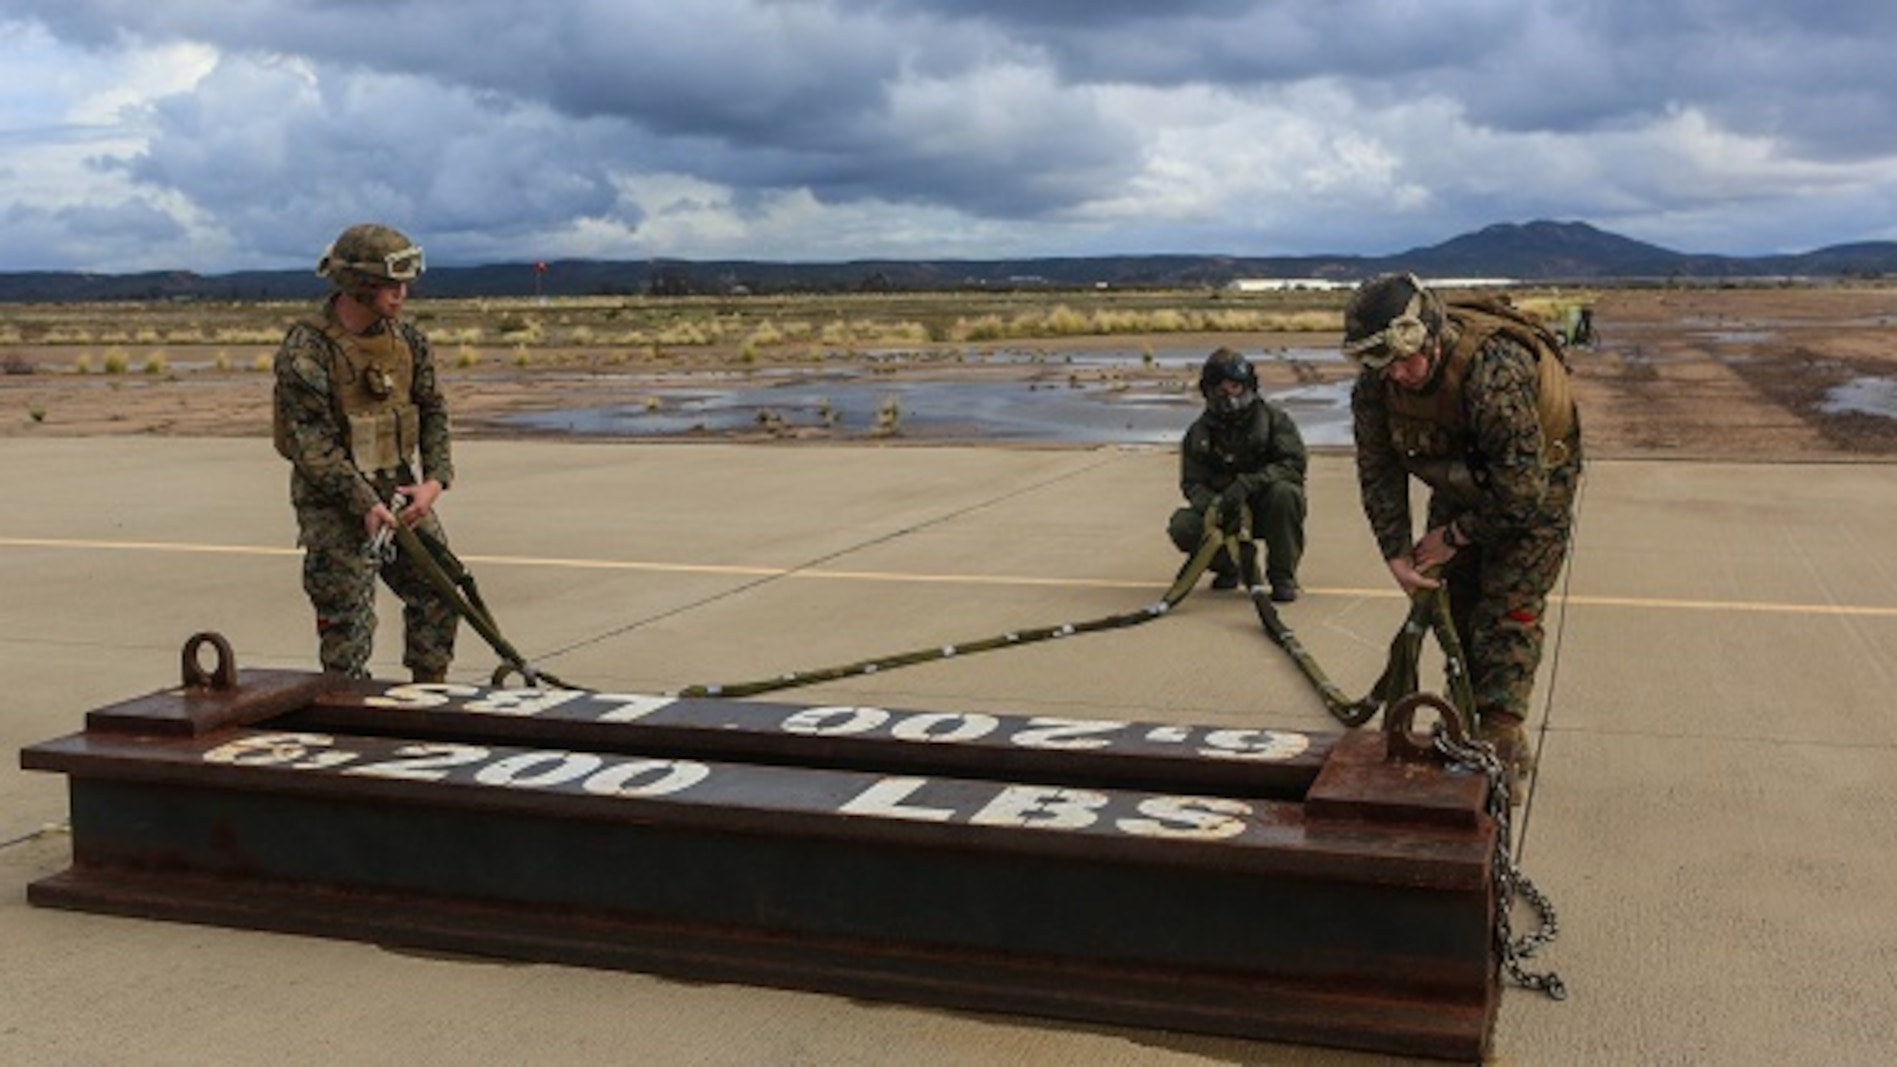 Marines with Combat Logistic Battalion (CLB) 11 prepare a 6,200 pound steel beam for a CH-53E Super Stallion lift aboard Marine Corps Air Station Miramar, Calif., Jan. 7. Marines with Marine Heavy Helicopter Squadron (HMH) 465 and CLB-11 practiced daytime external lift training to prepare for deployments. (U.S. Marine Corps photo by Lance Cpl. Harley Robinson/Released)